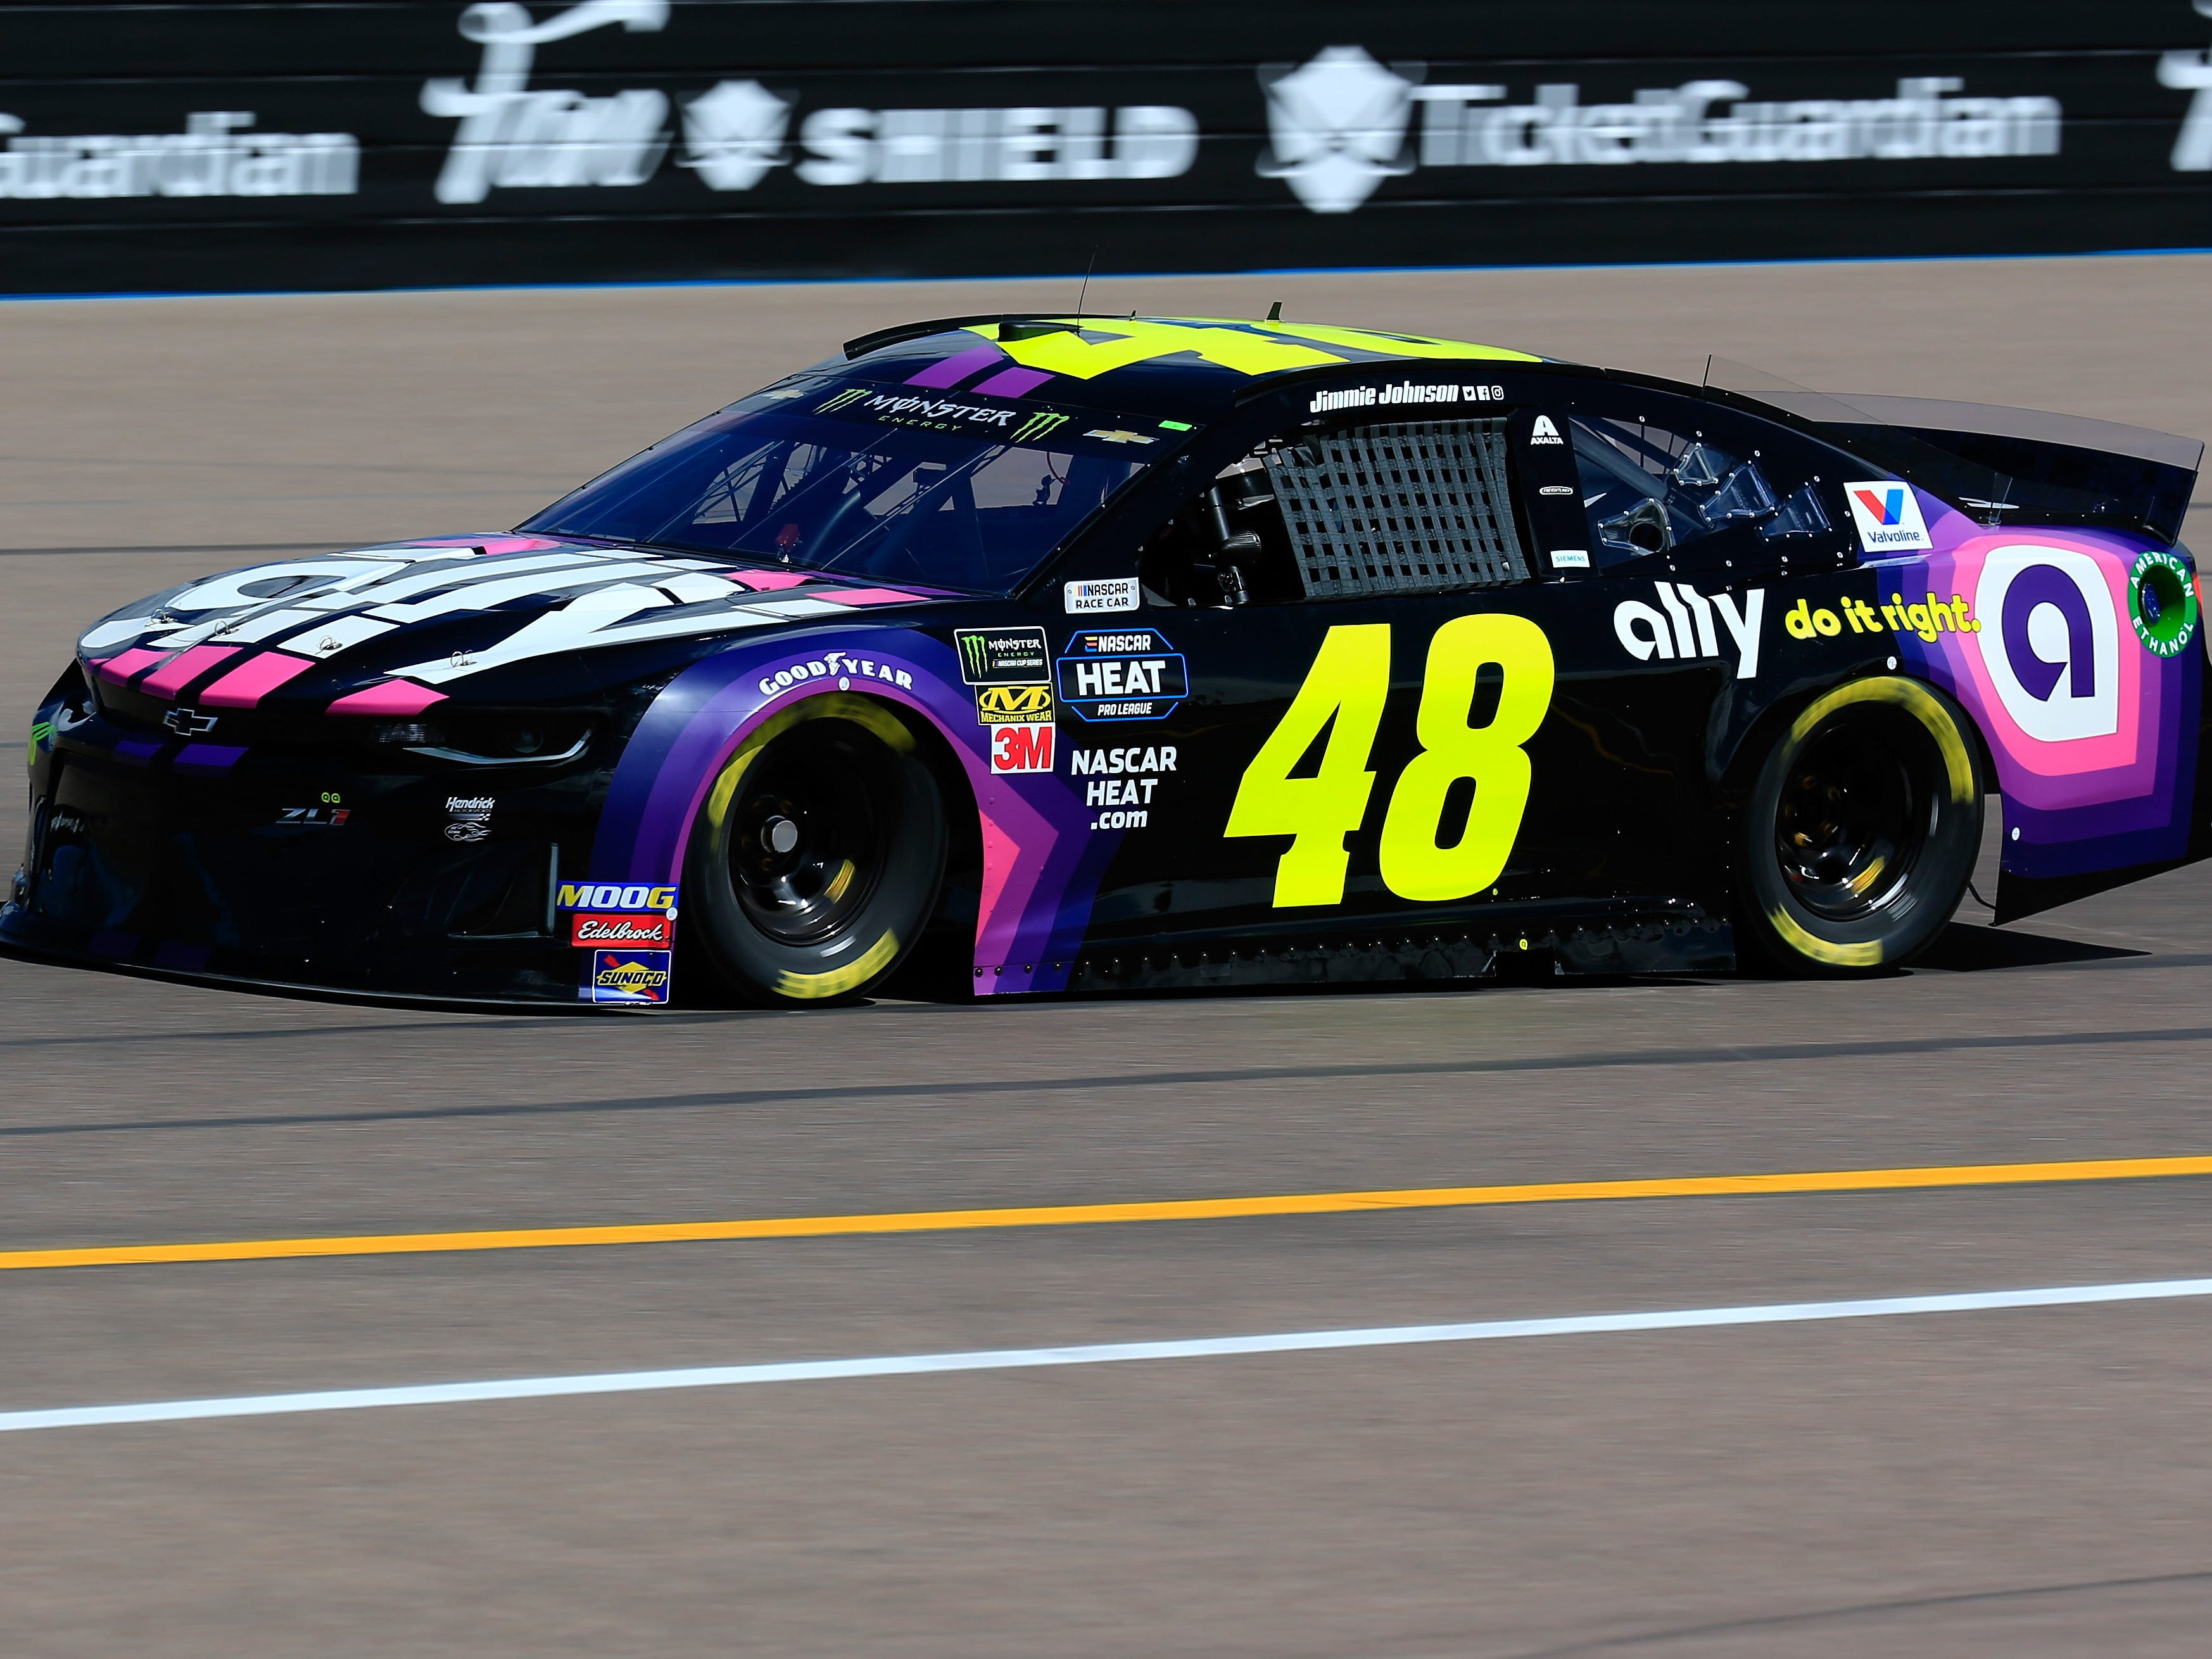 AVONDALE, AZ - MARCH 08: Jimmie Johnson, driver of the #48 Ally Chevrolet, practices for the Monster Energy NASCAR Cup Series TicketGuardian 500 at ISM Raceway on March 8, 2019 in Avondale, Arizona.